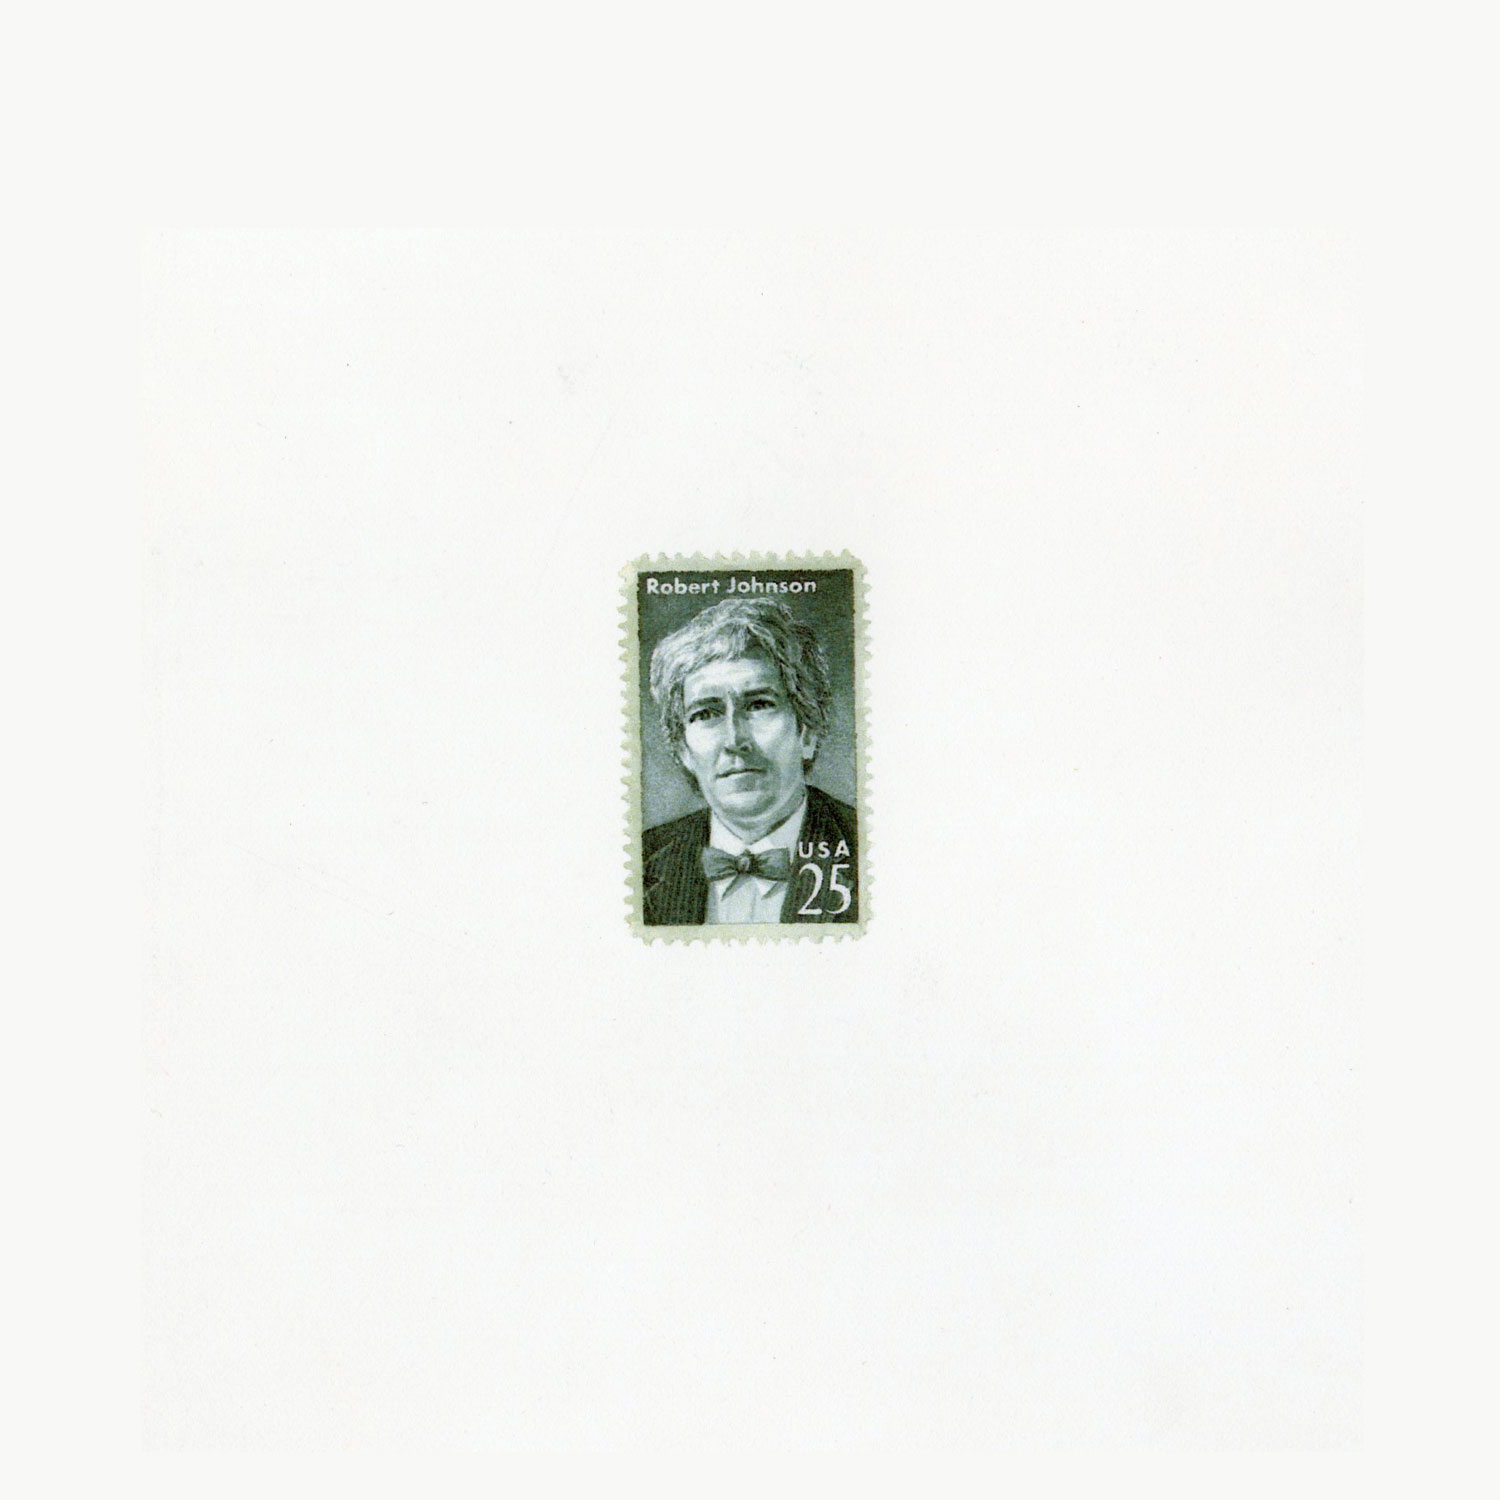 Robert Johnson 25¢ Commemorative Stamp